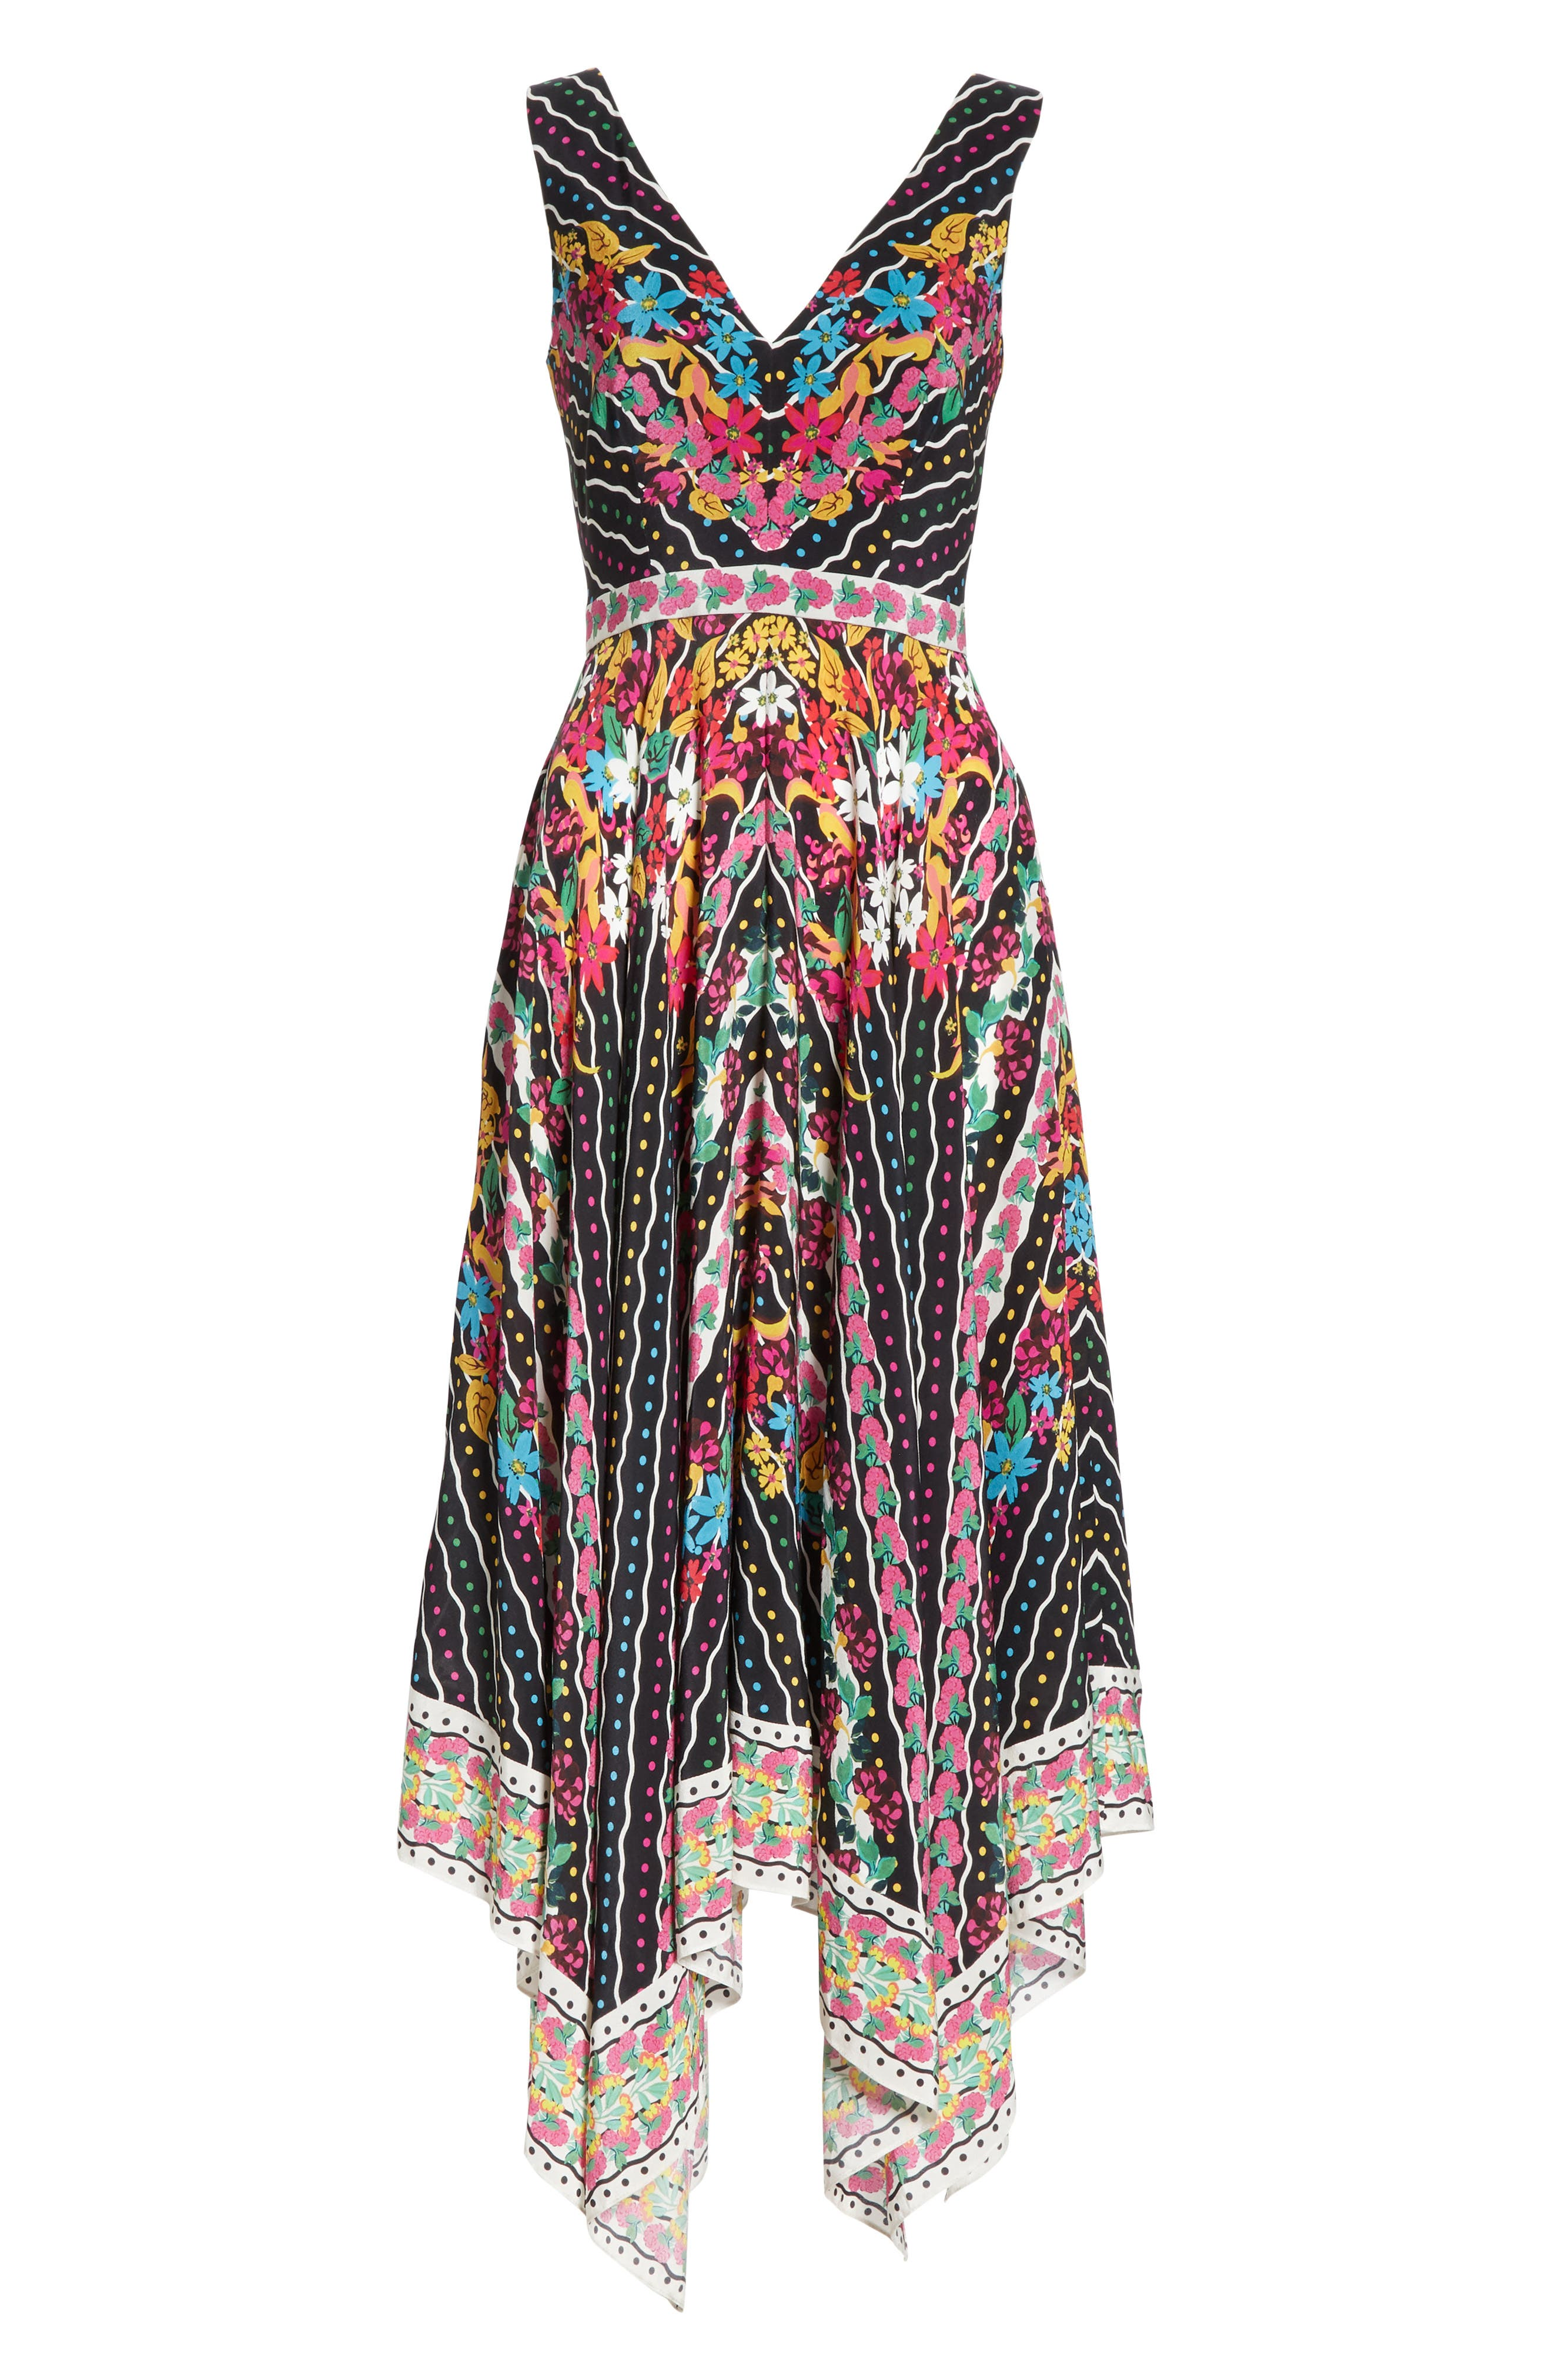 SALONI, Zuri Floral Print Dress, Alternate thumbnail 6, color, 001